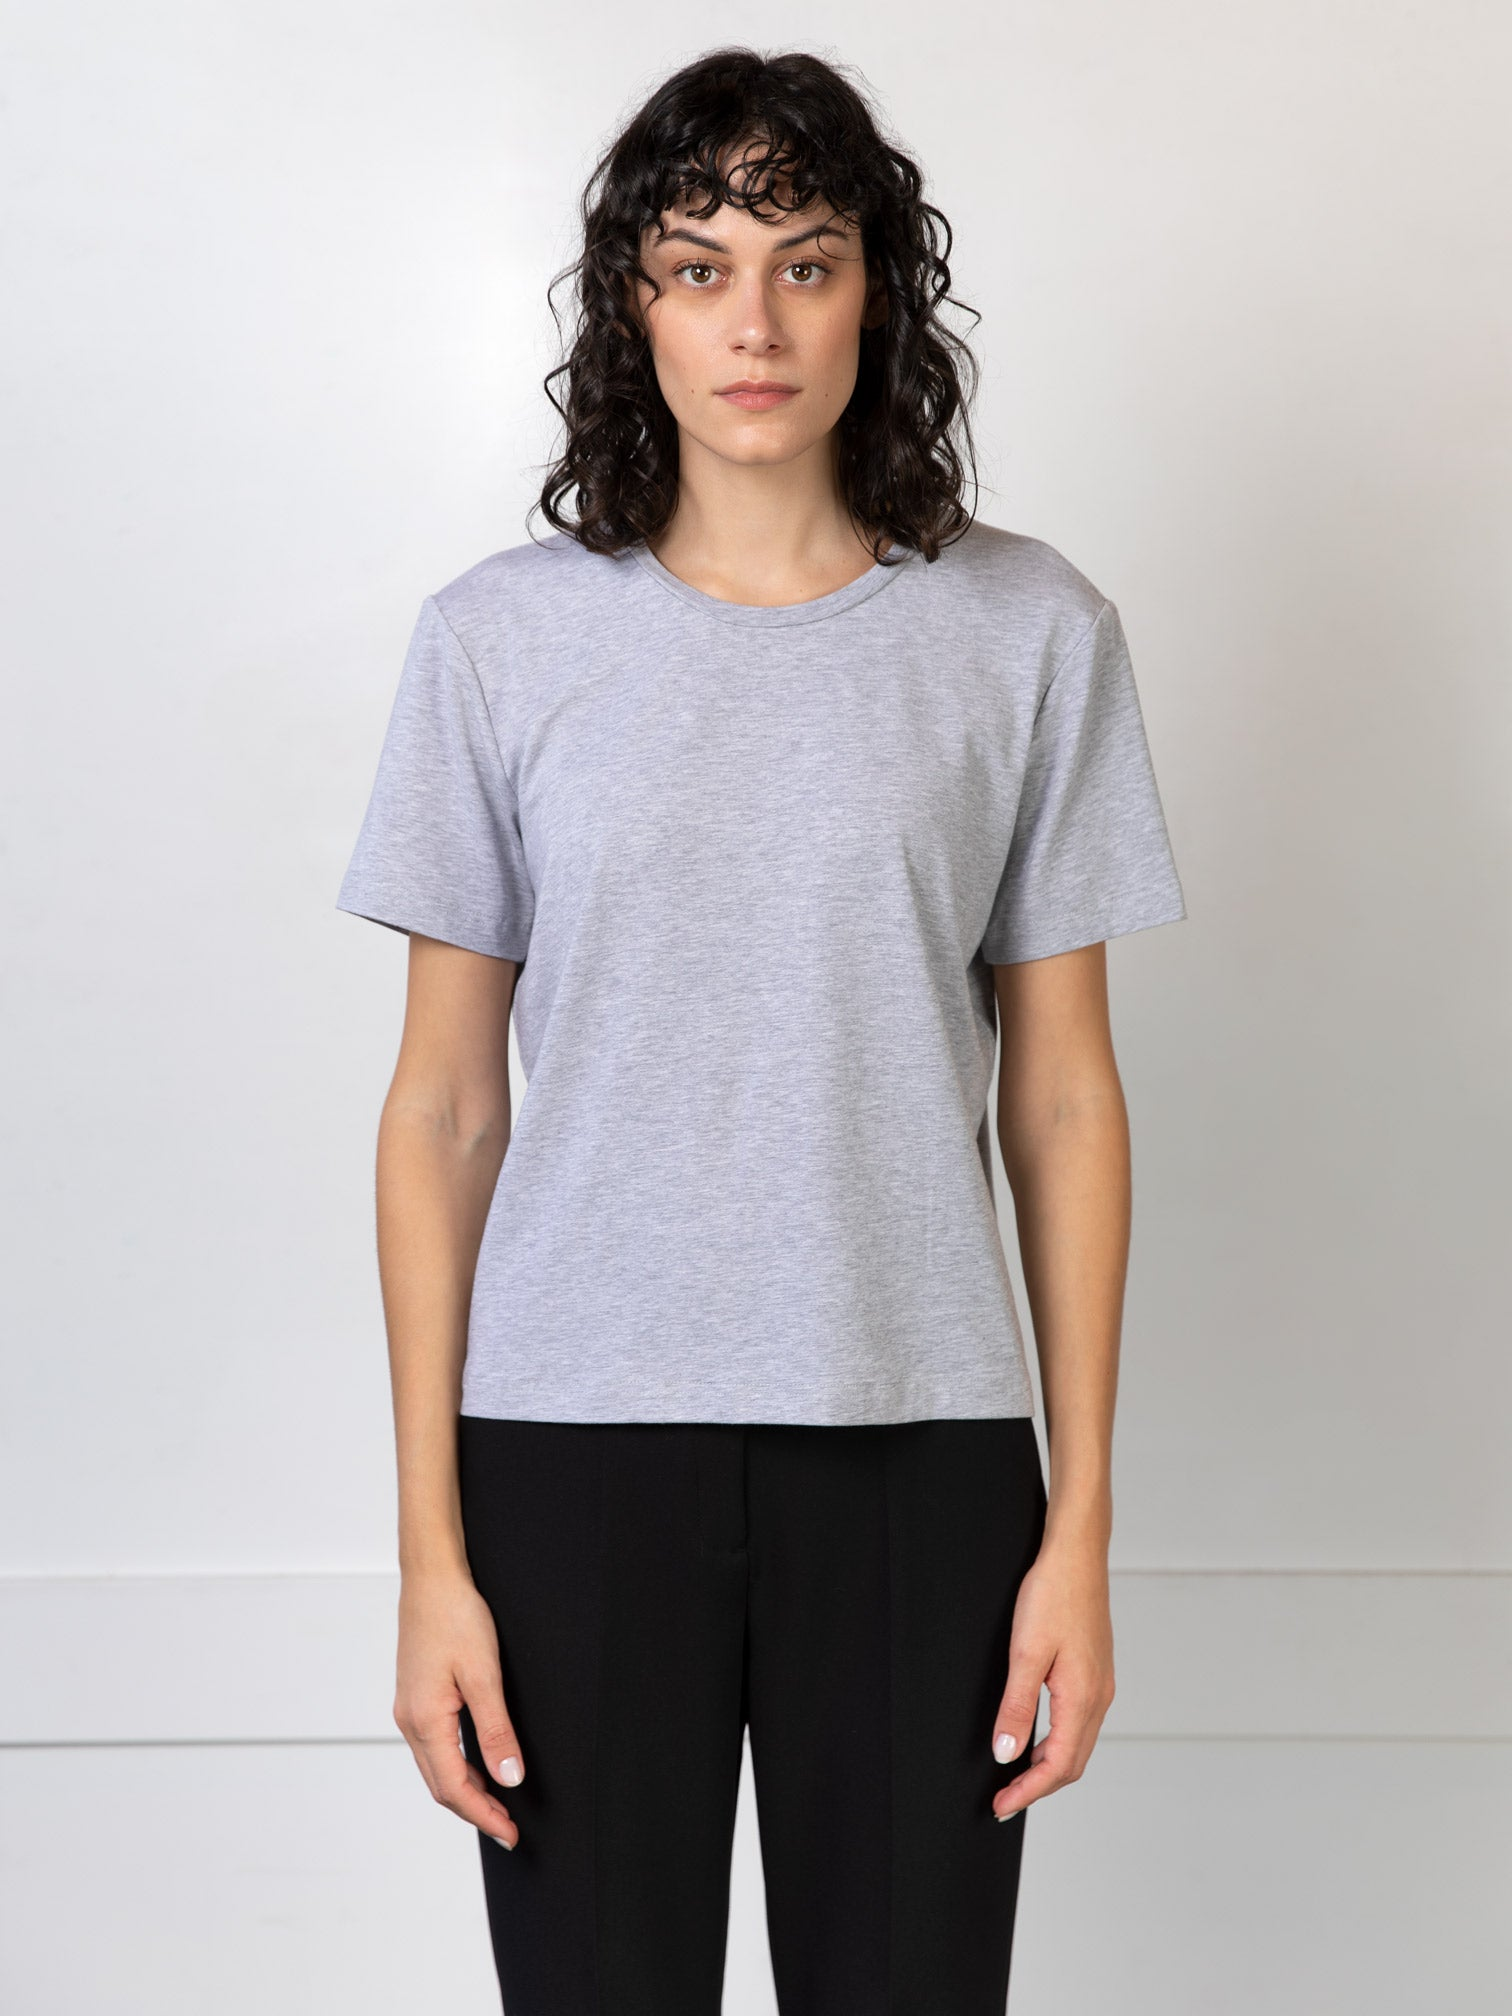 Tee-shirt Agathe gris clair chiné